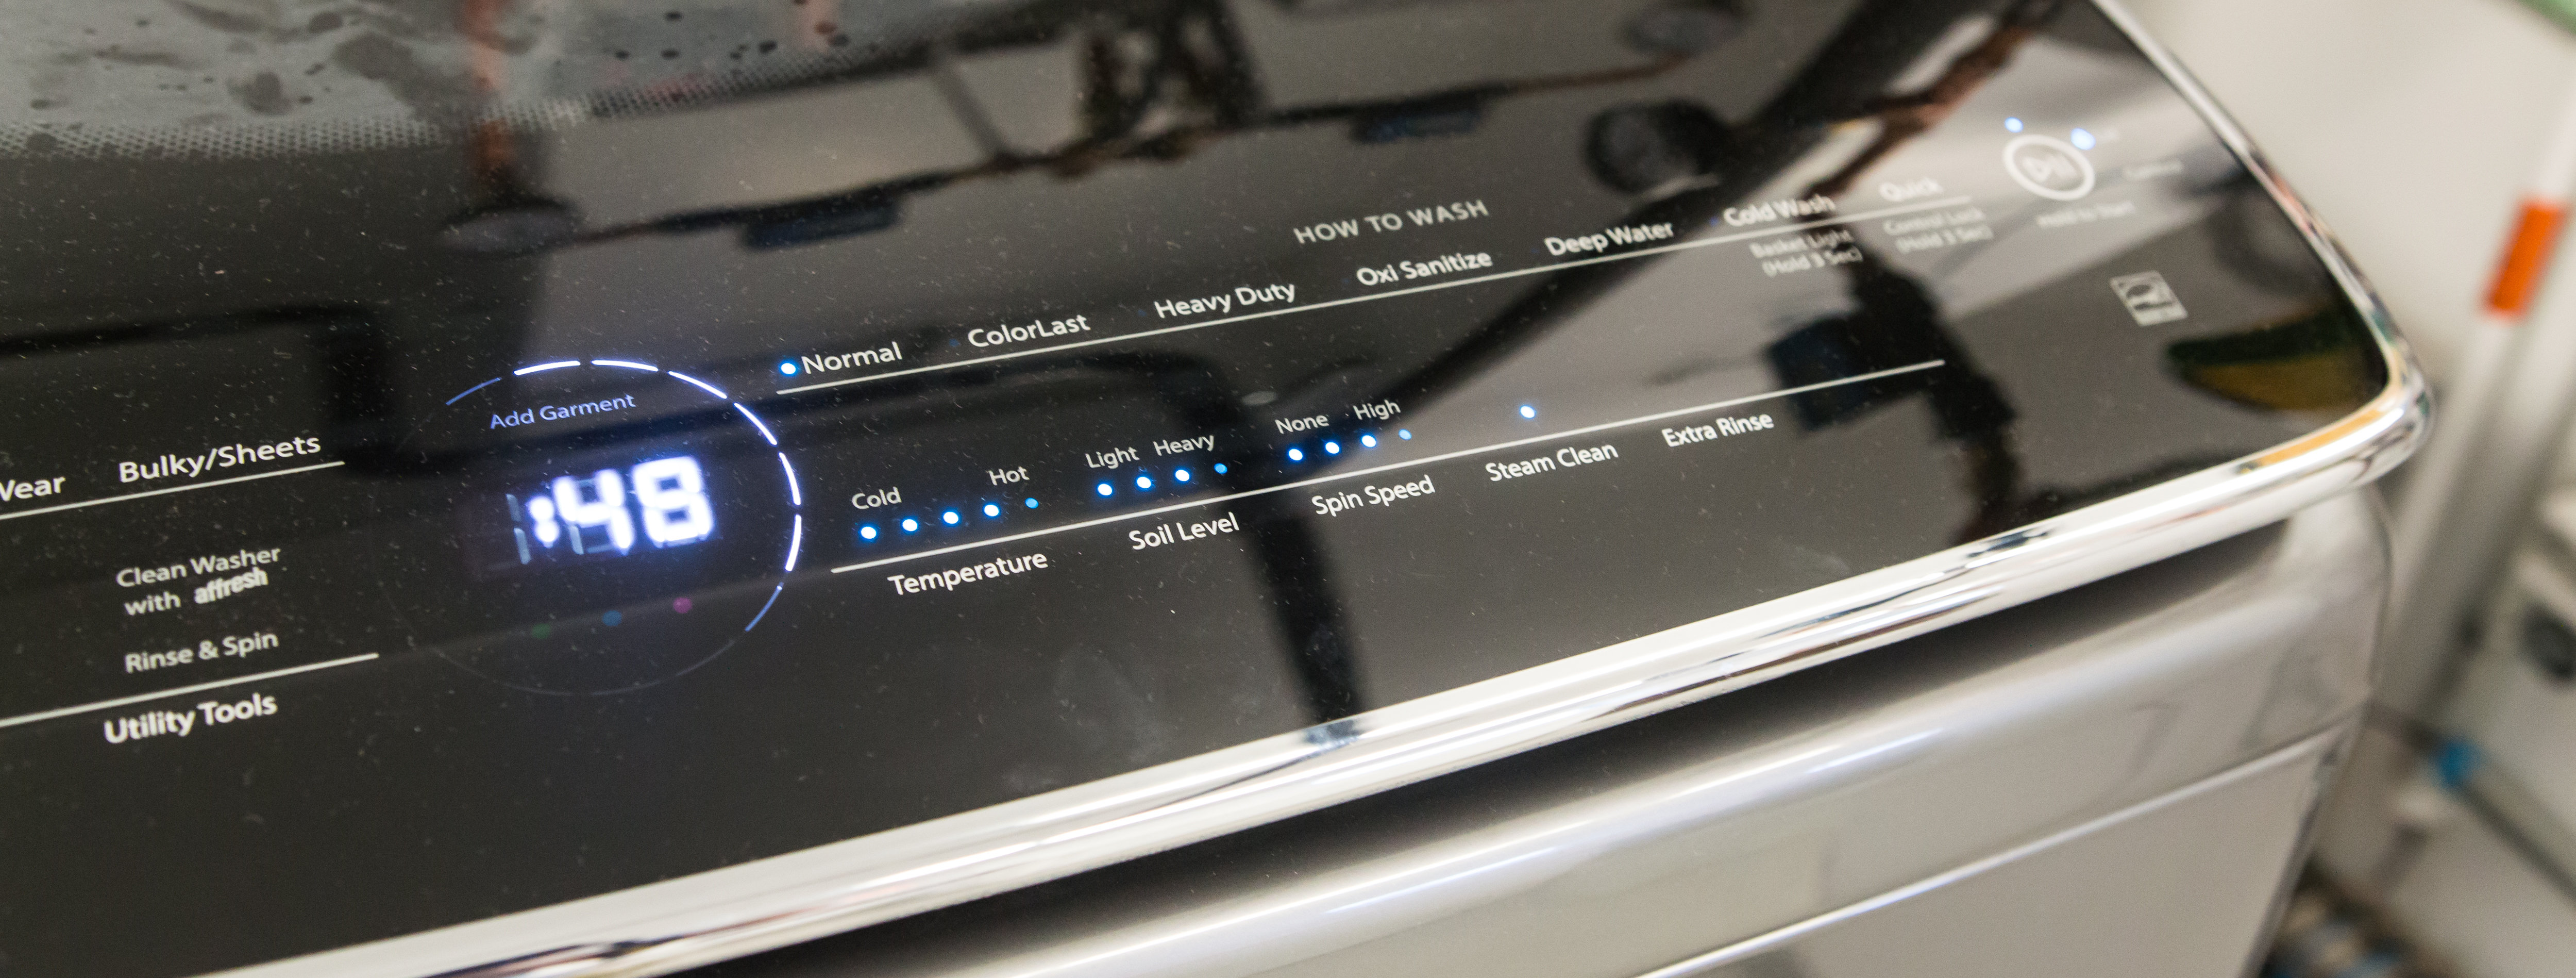 The How to Wash side of the interface, featuring the new ColorLast option.